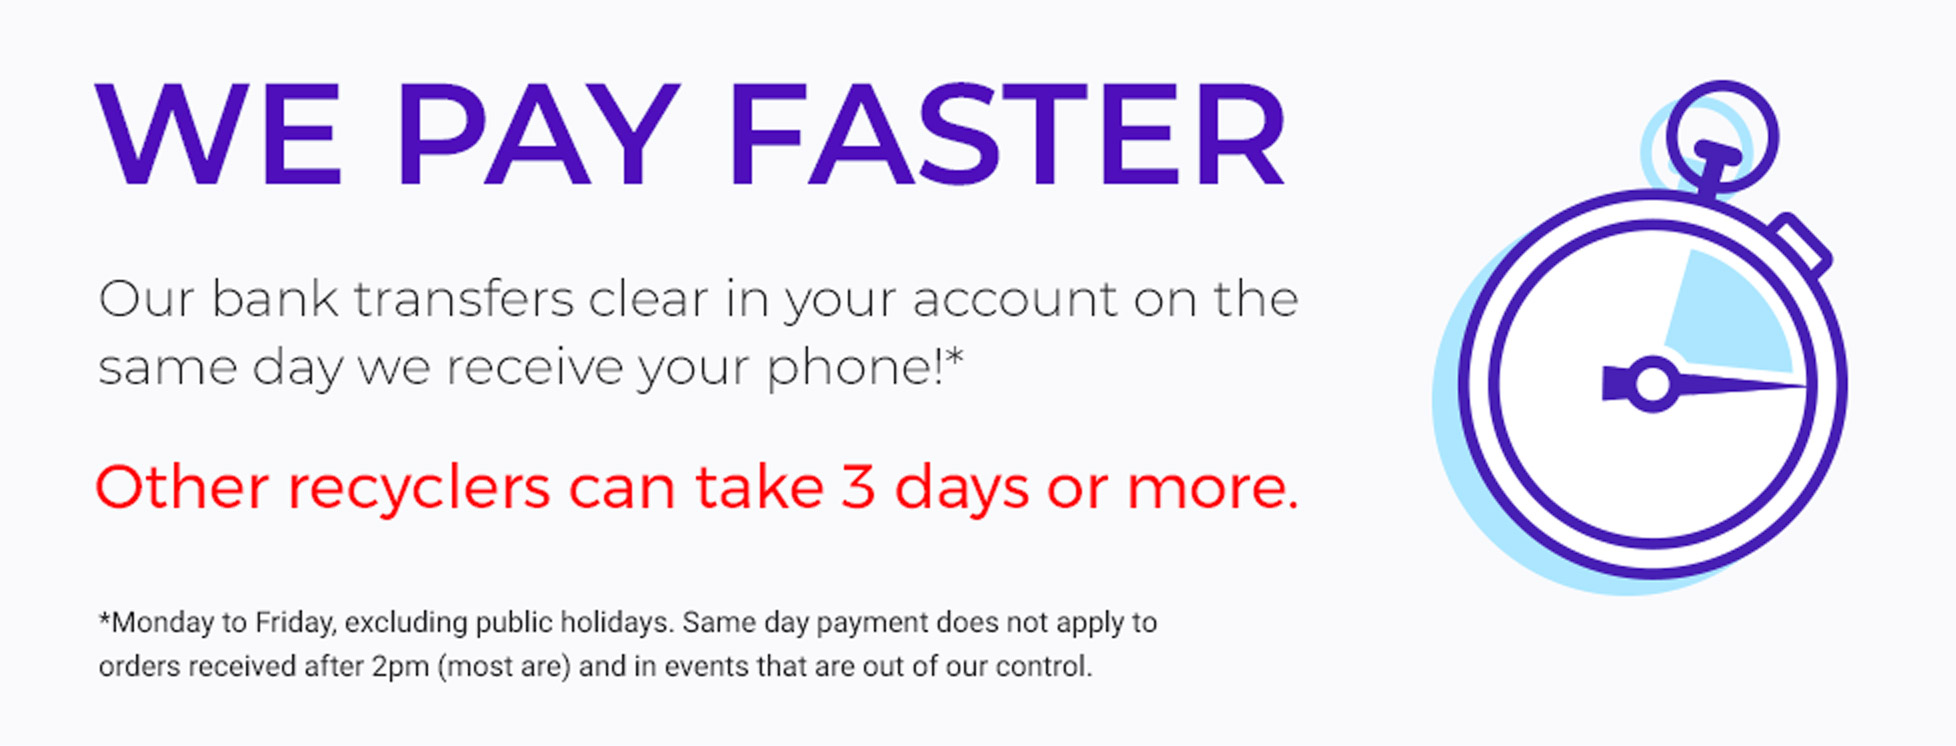 We pay faster! Our bank transfers clear in your account on the same day we receive your phone